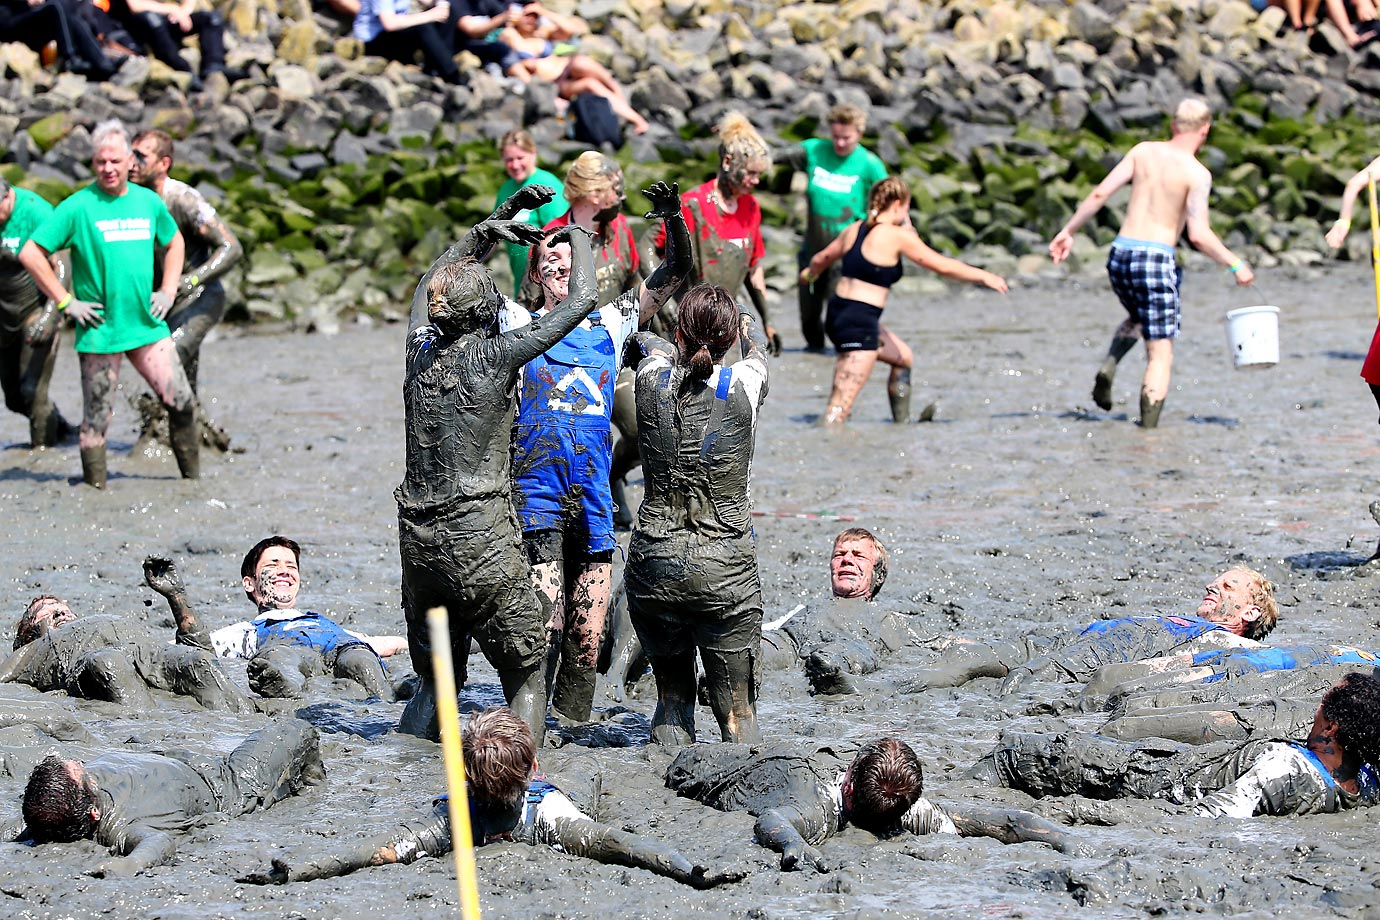 Participants during the Mudflat Olympic Games in Brunsbuettel, Germany.